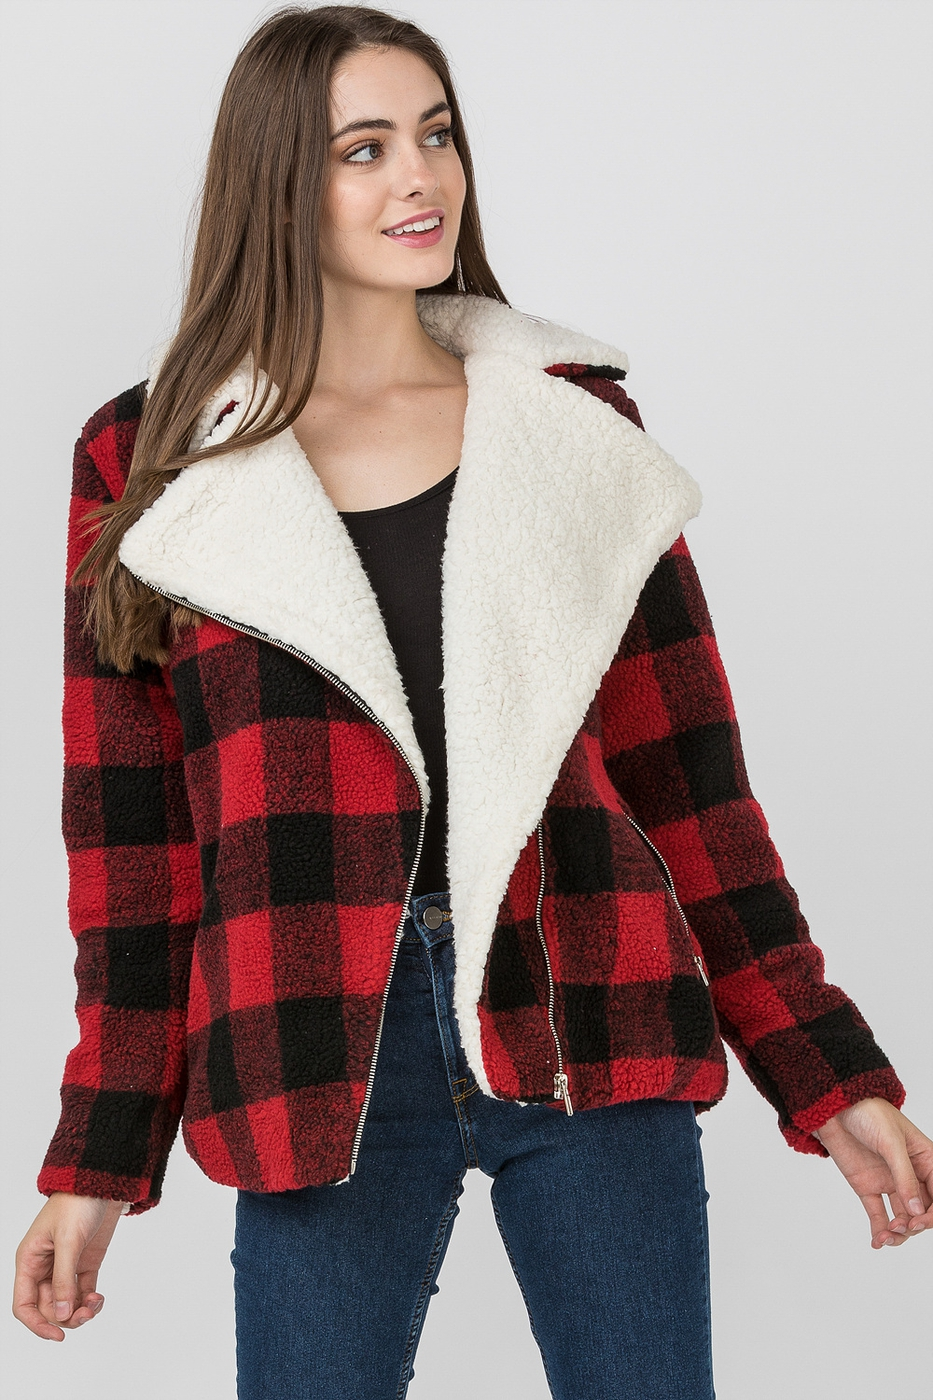 BUFFALO PLAID JACKET - orangeshine.com